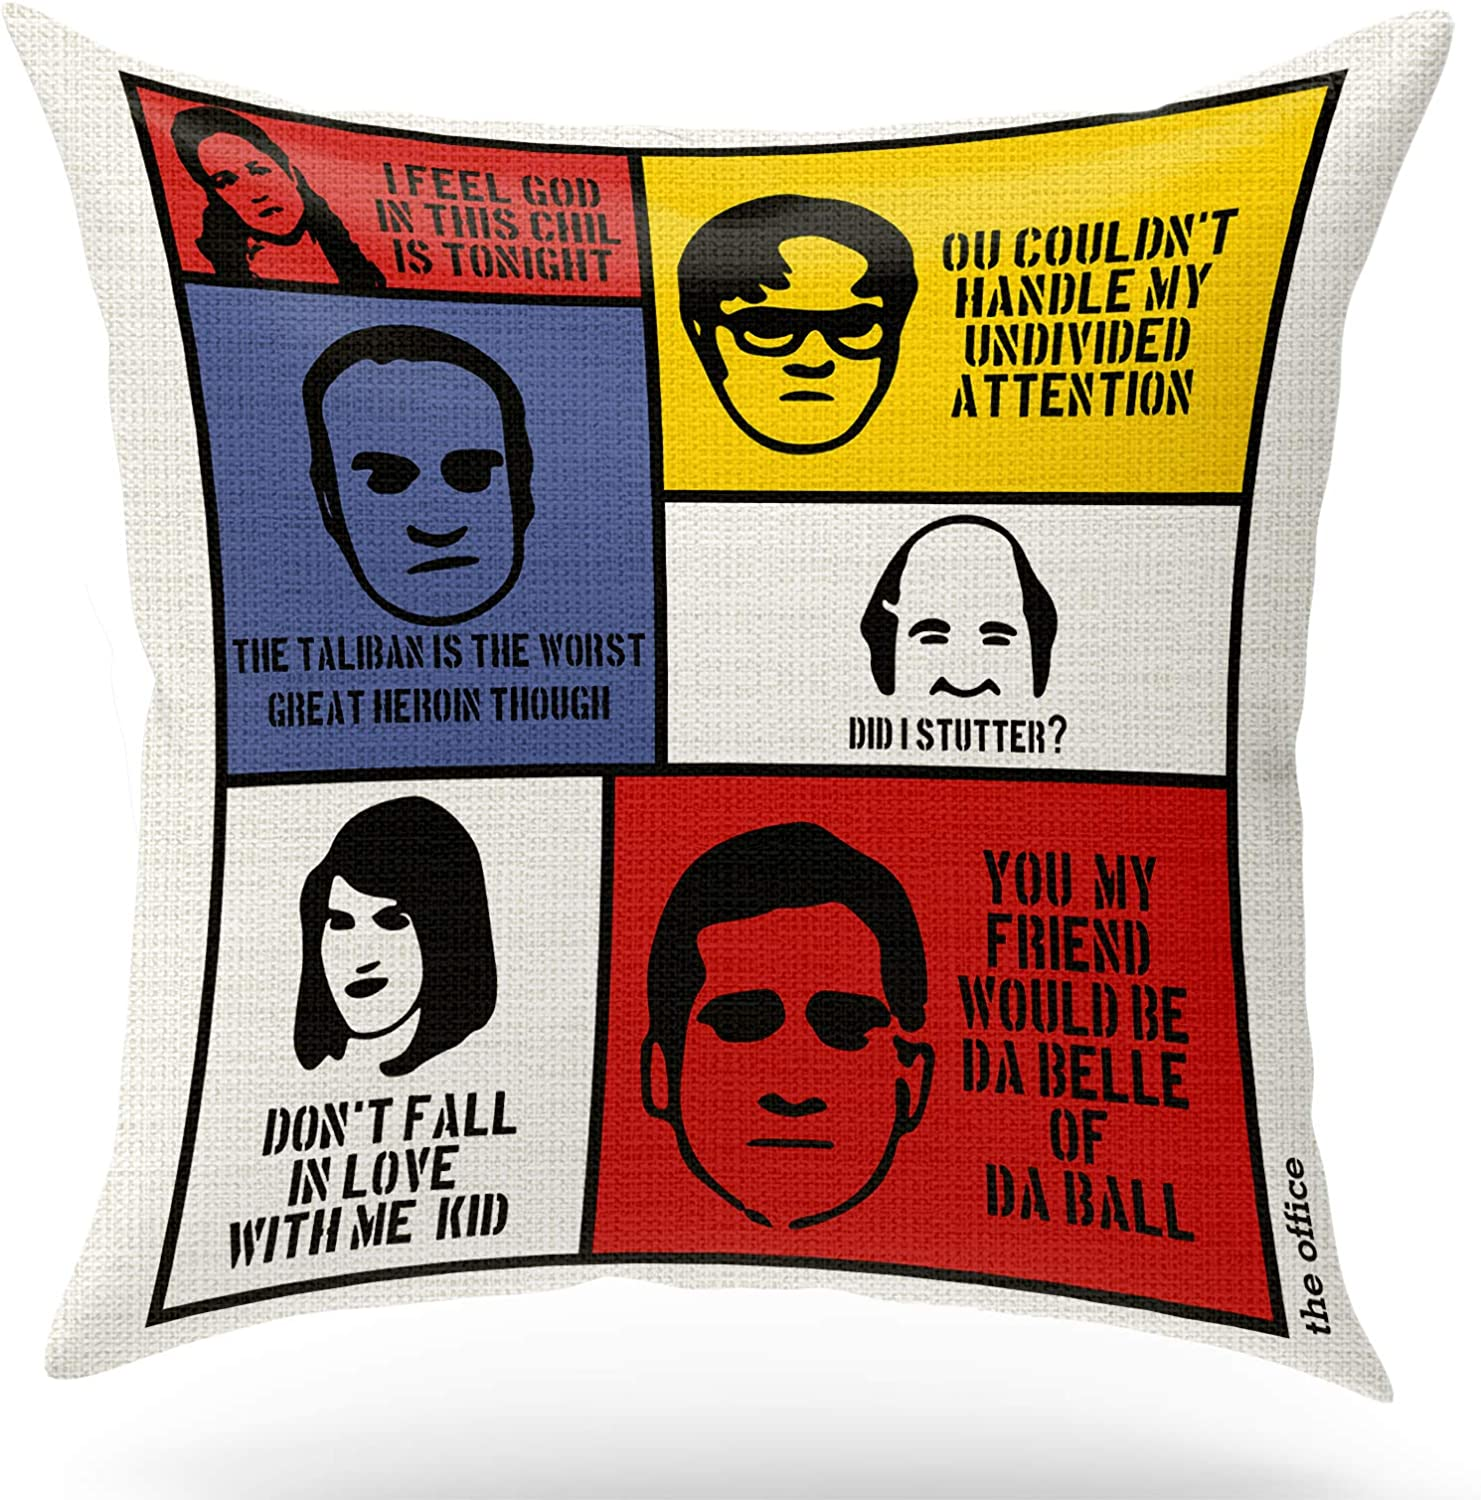 ForbiddenPaper Funny The Office TV Show Theme Pillow Covers | Cute Eco-Friendly Cotton Linen Pillow Gifts for The Office Fans Teens Women Friends Square 18x18 inch Decorative Pillow